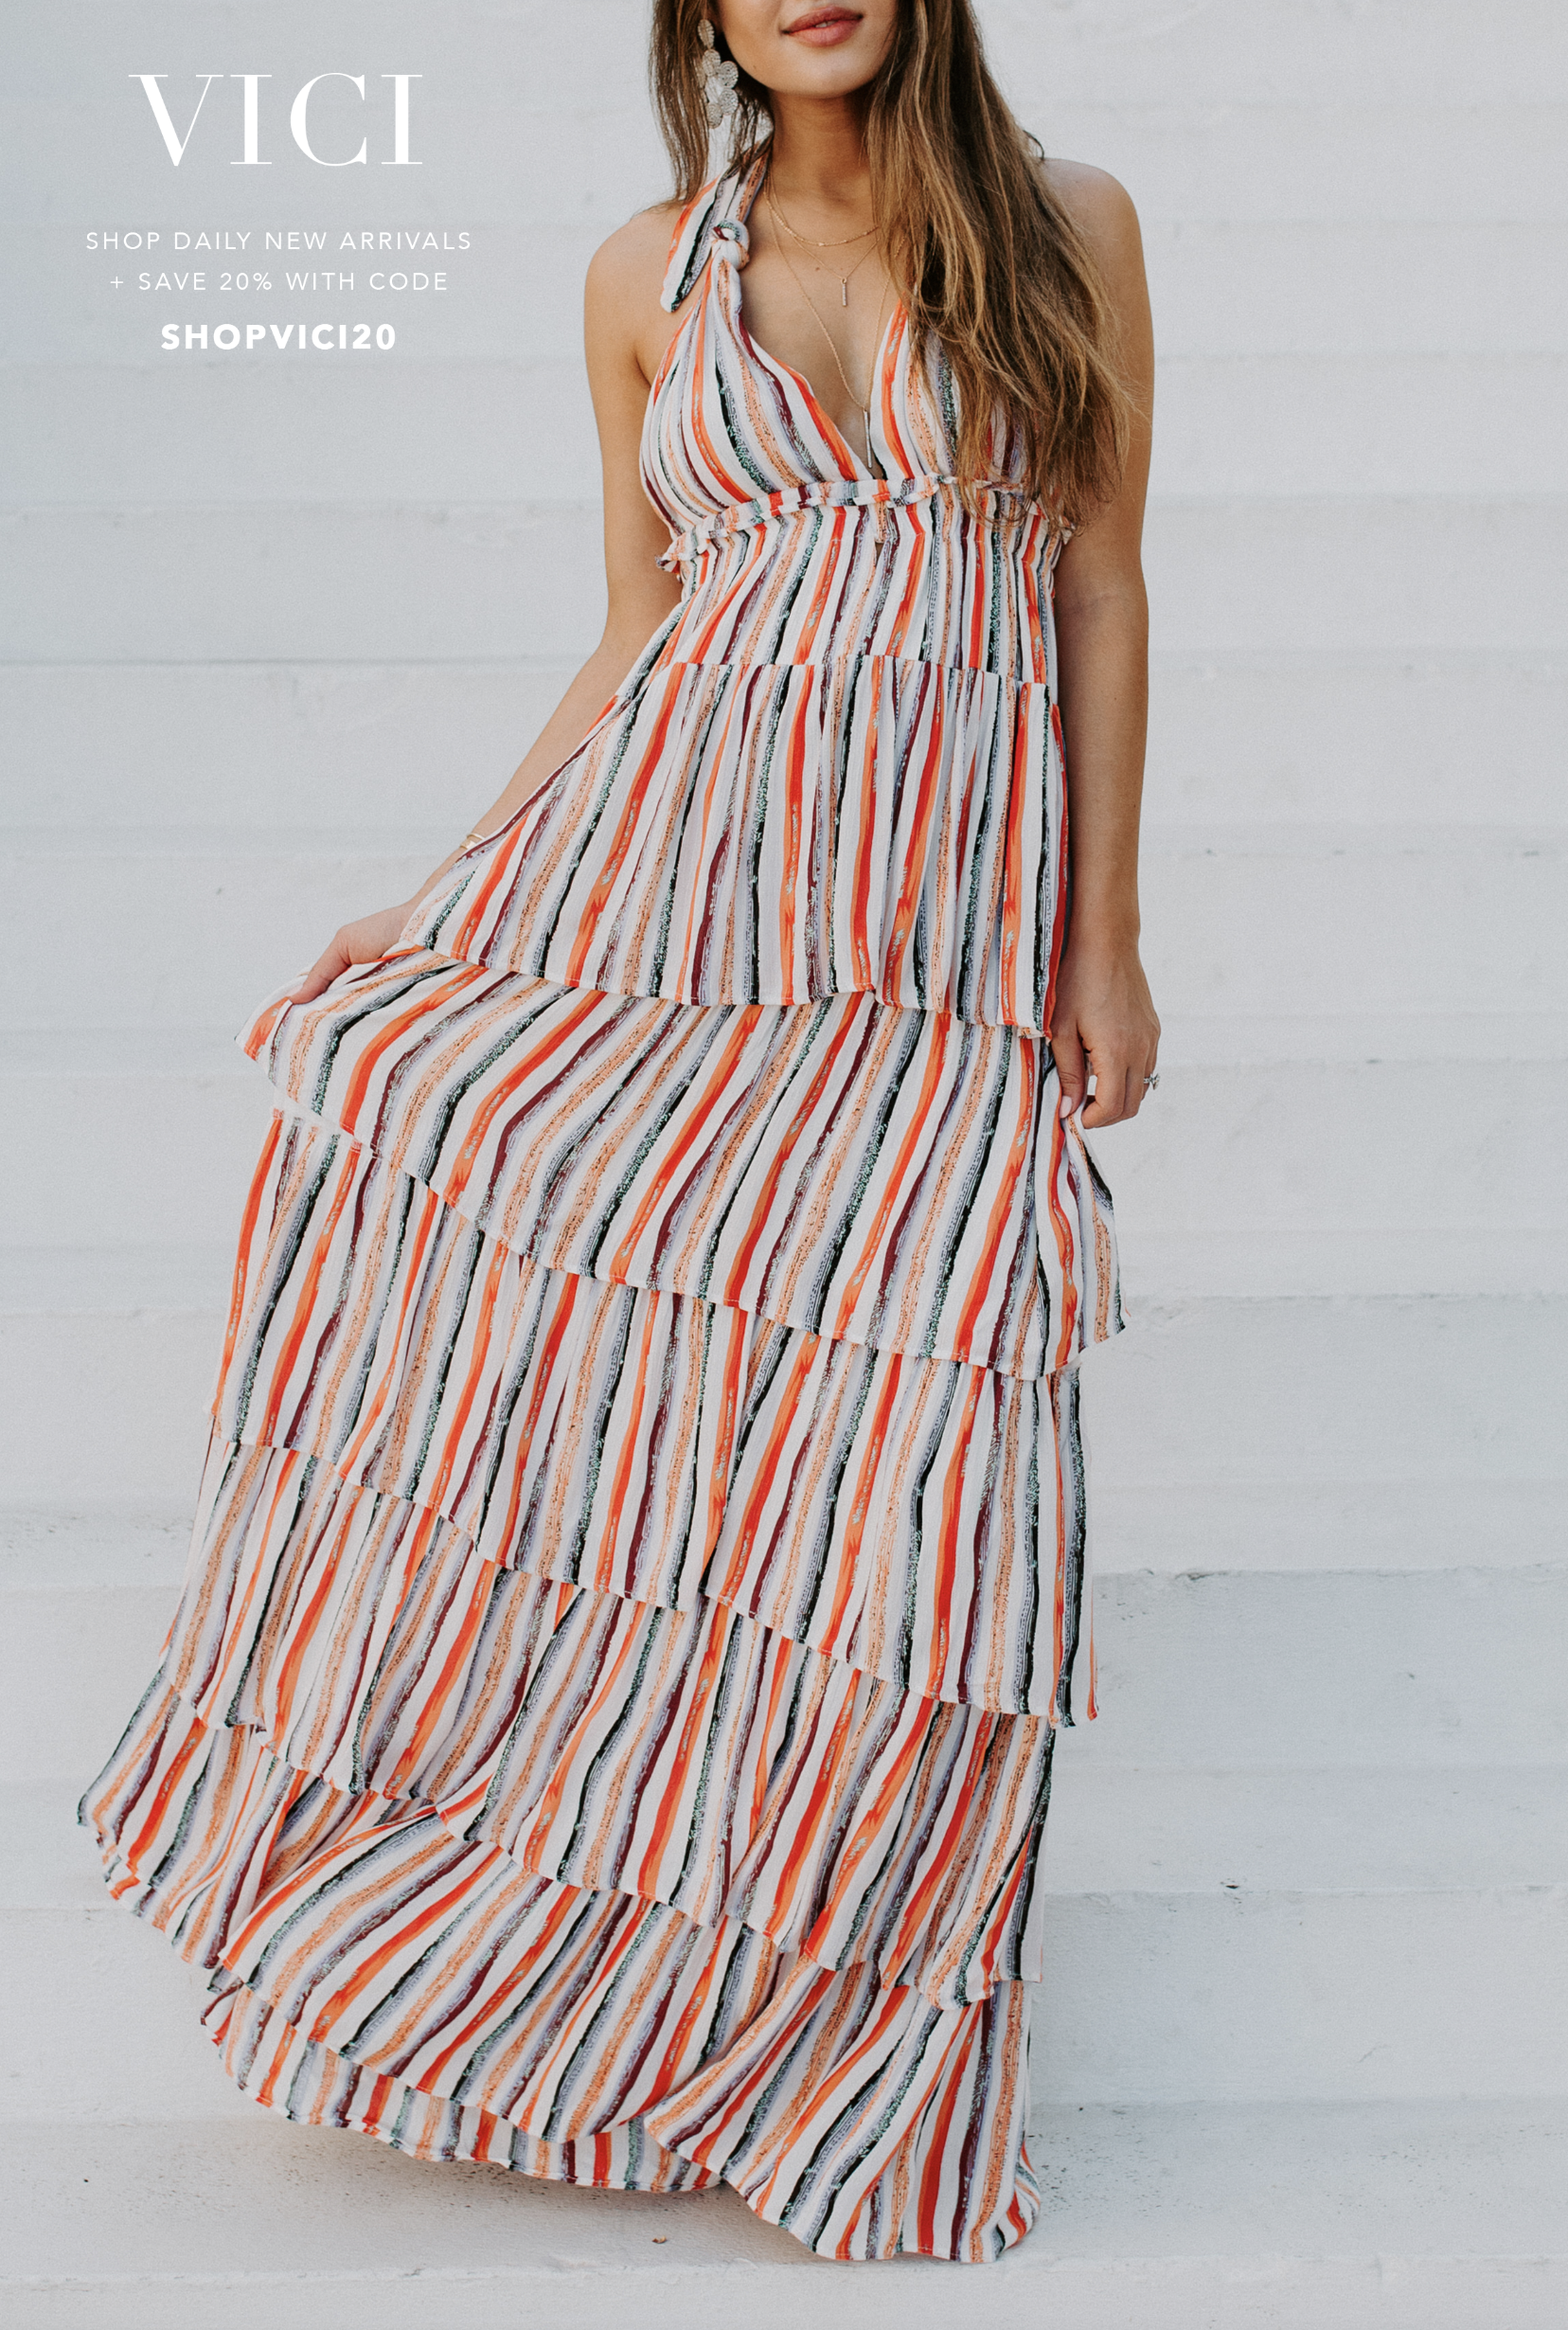 Evannelucas Vici Shop Now With Code Shopvici20 To Save 20 On Your Order Maxi Dress Halter Maxi Dresses Dresses [ 2460 x 1656 Pixel ]